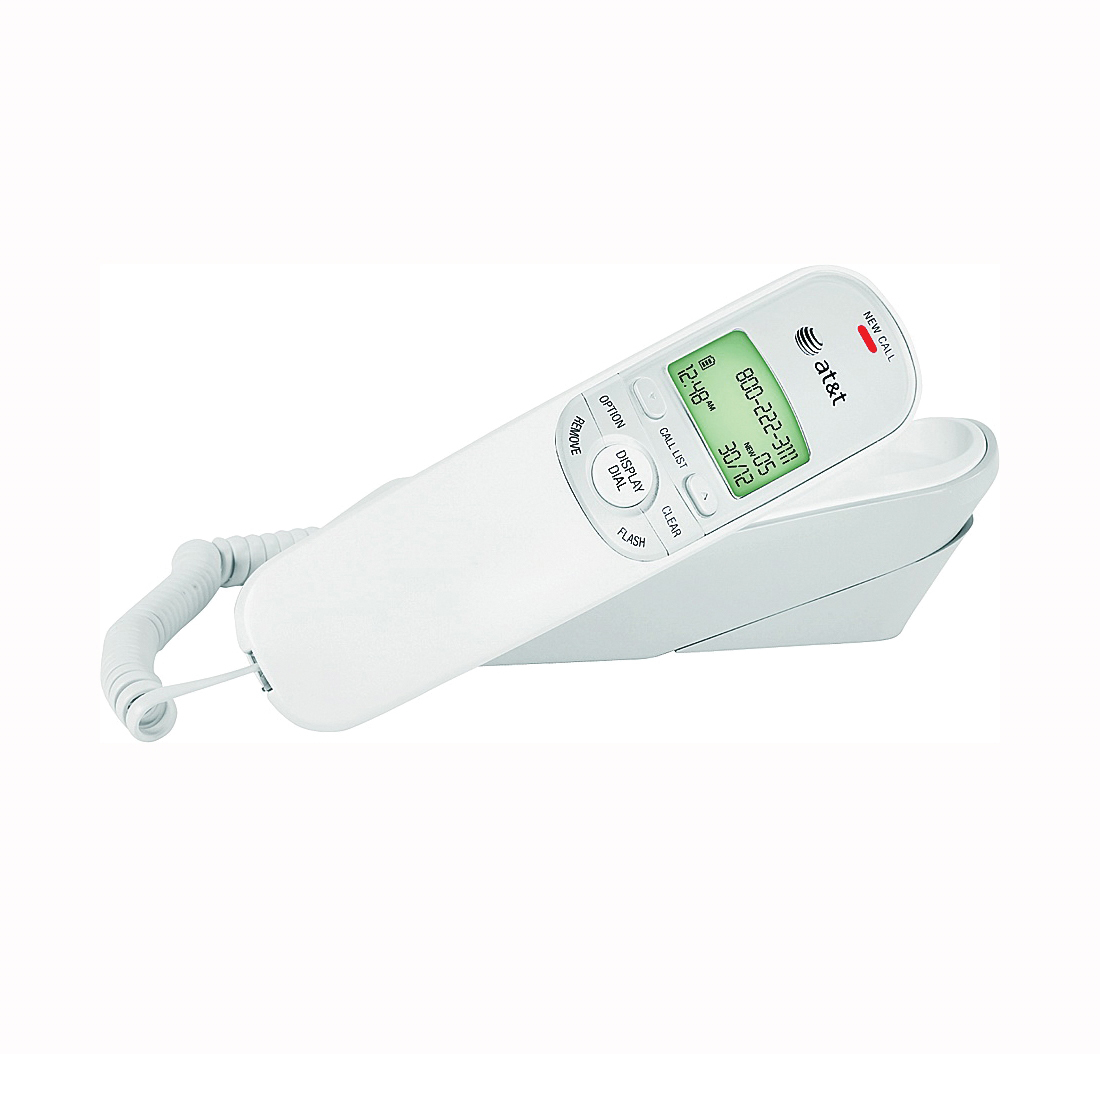 Picture of Vtech TR1909 Corded Telephone, 50 Name Input, White